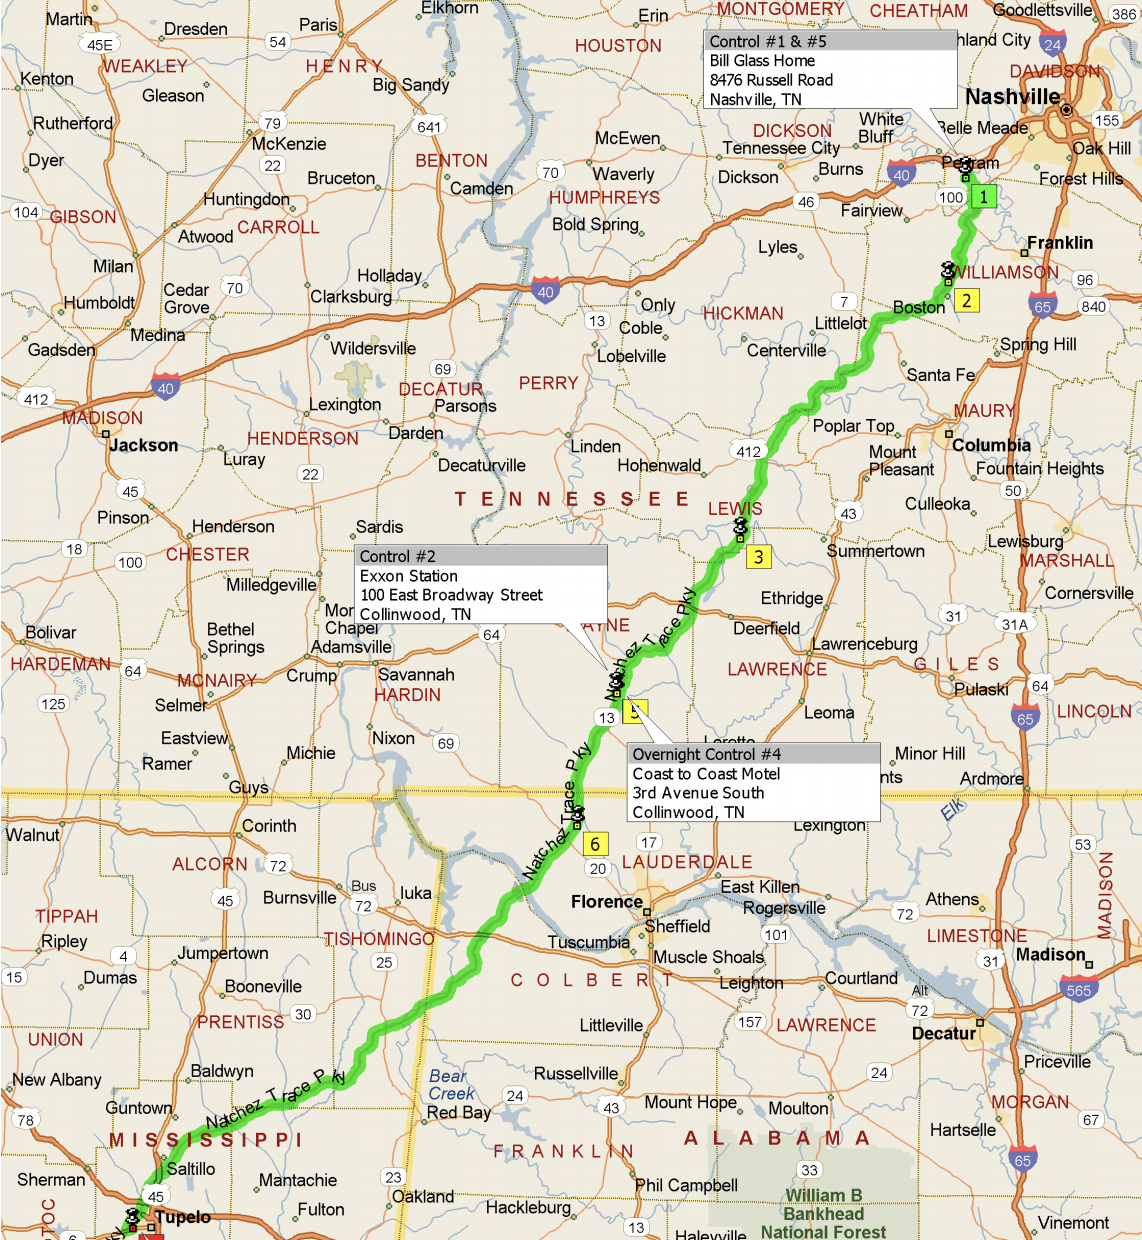 Natchez Trace 200K, 300K, 400K & 600K - April 13, 2019100k: Ride With GPS Route200k: Ride With GPS Route200k: PDF Route300k: Ride With GPS Routes Outbound + Return300k: PDF Route400k: Ride With GPS Routes Outbound + Return400k: PDF Route600k: Ride With GPS Route600k: PDF RouteDirections to Pasquo, TNRecommended Hotel